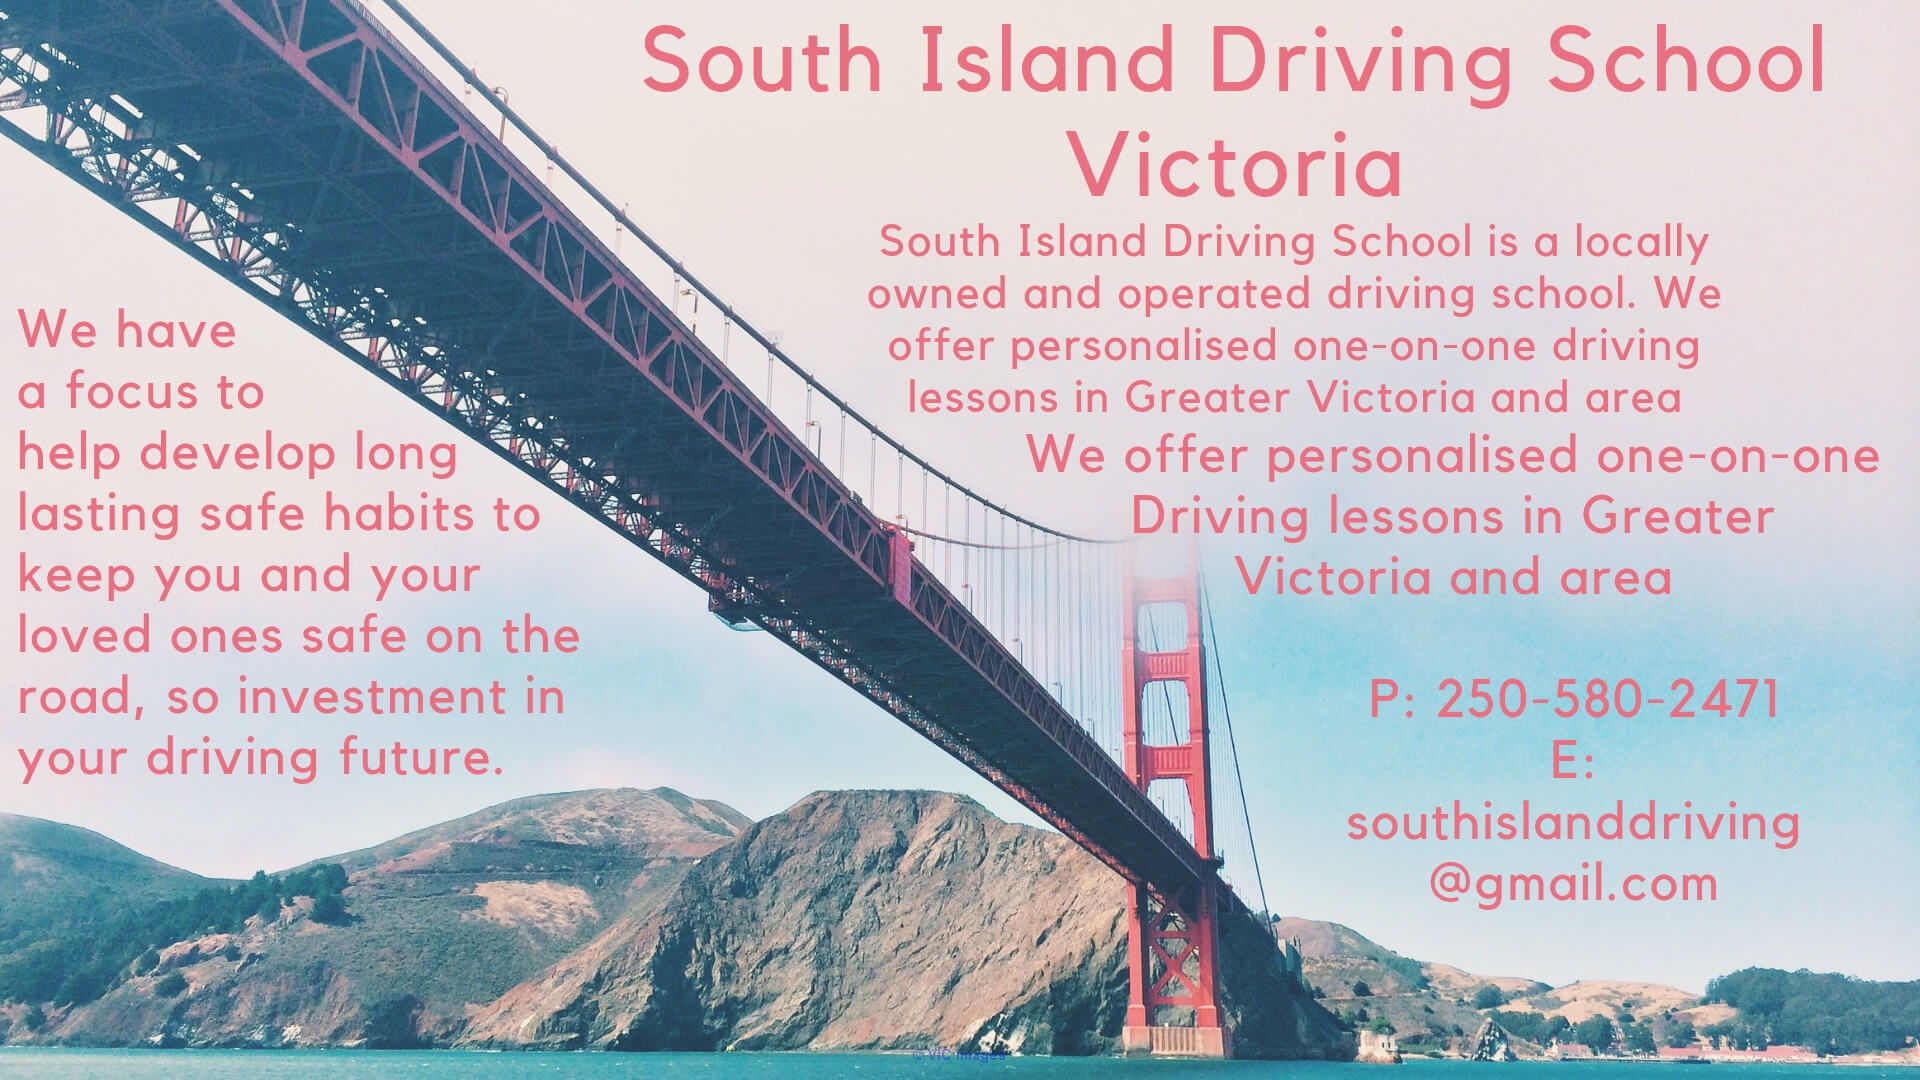 South Island Best Driving School In Victoria Calgary, Alberta, Canada Annonces Classées